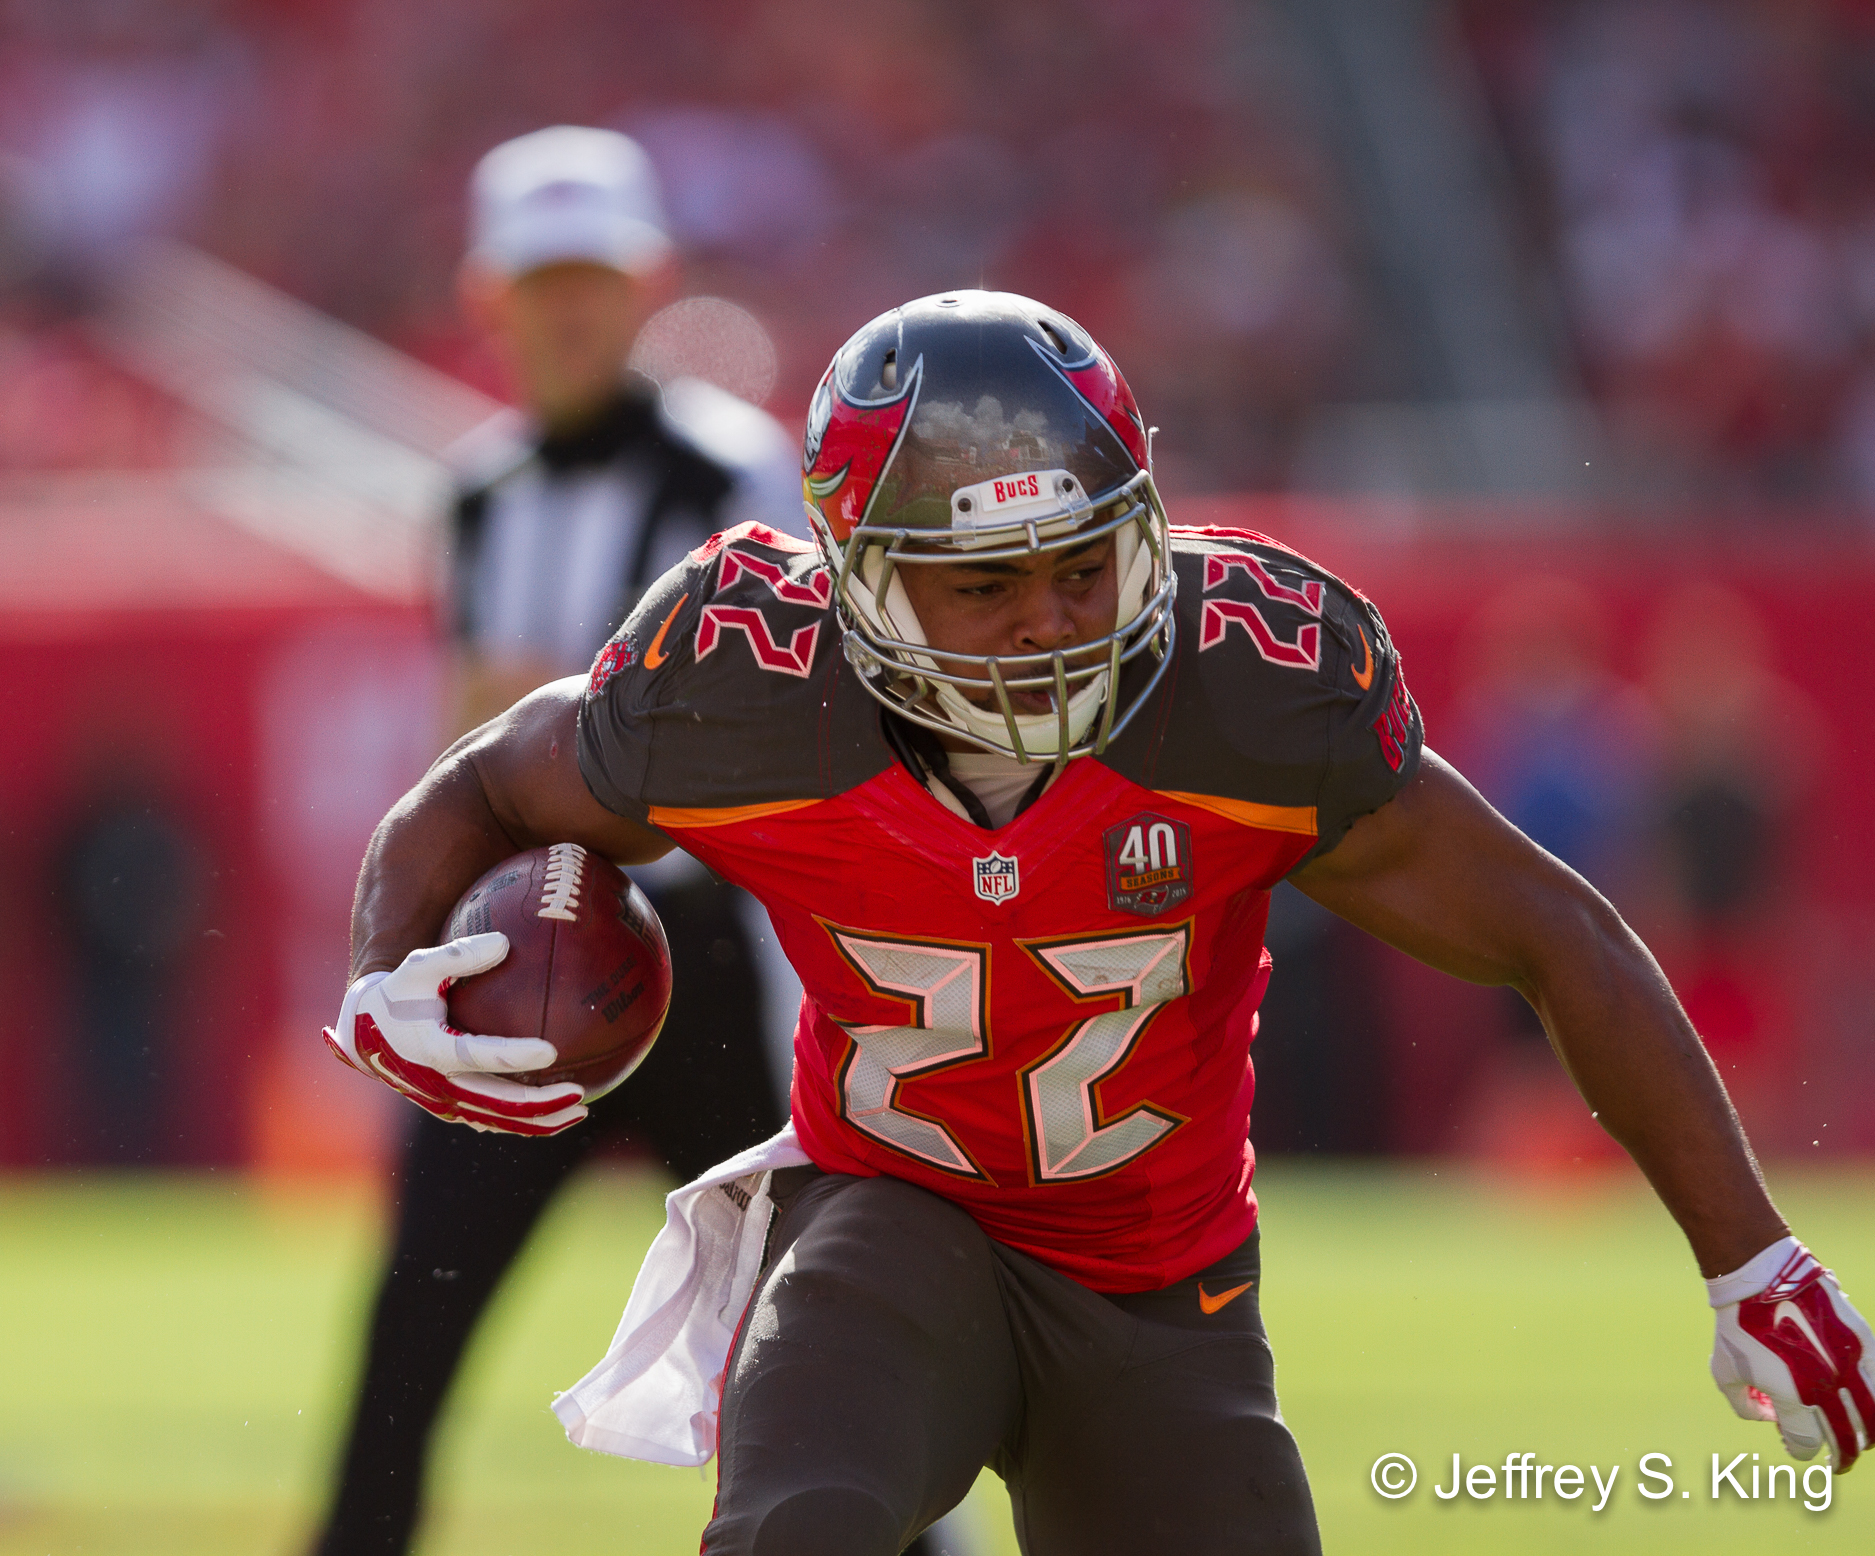 The Bucs think Martin has looked good so far. /JEFFREY KING